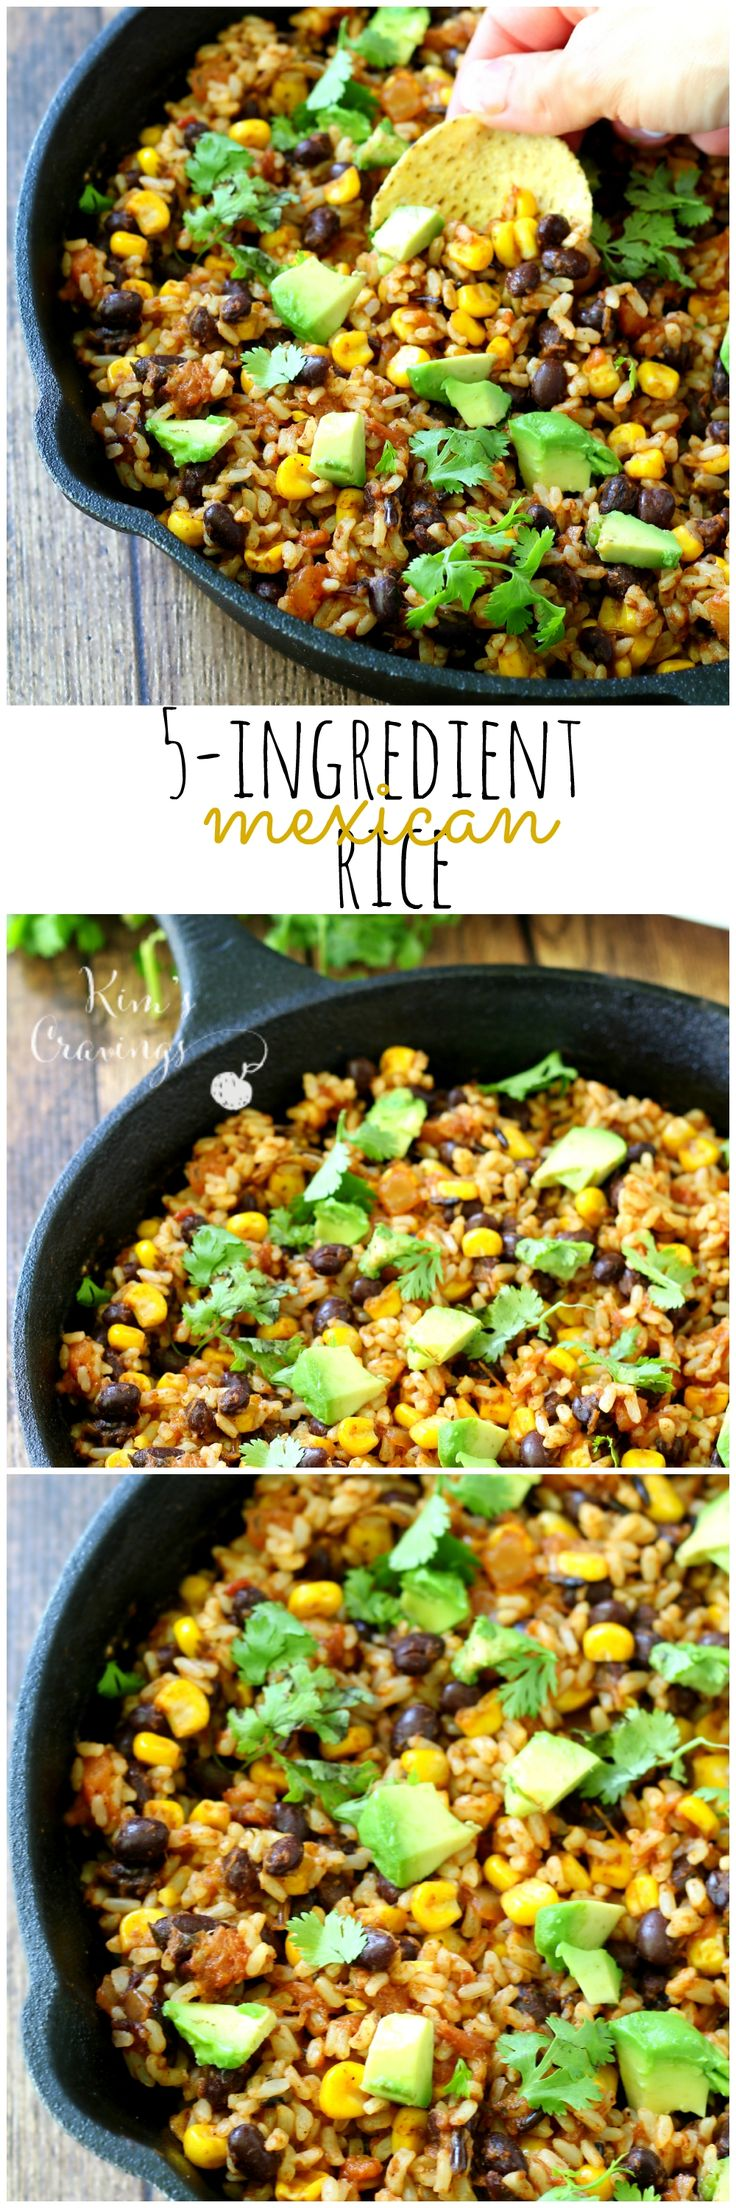 5 Ingredient Mexican Brown Rice might just be the simplest most flavorful rice dish you'll ever cook. It comes together so easily and quickly in one skillet, which makes for less mess. (gluten-free & vegan)  LunchWithMinute AD @MinuteRiceUS